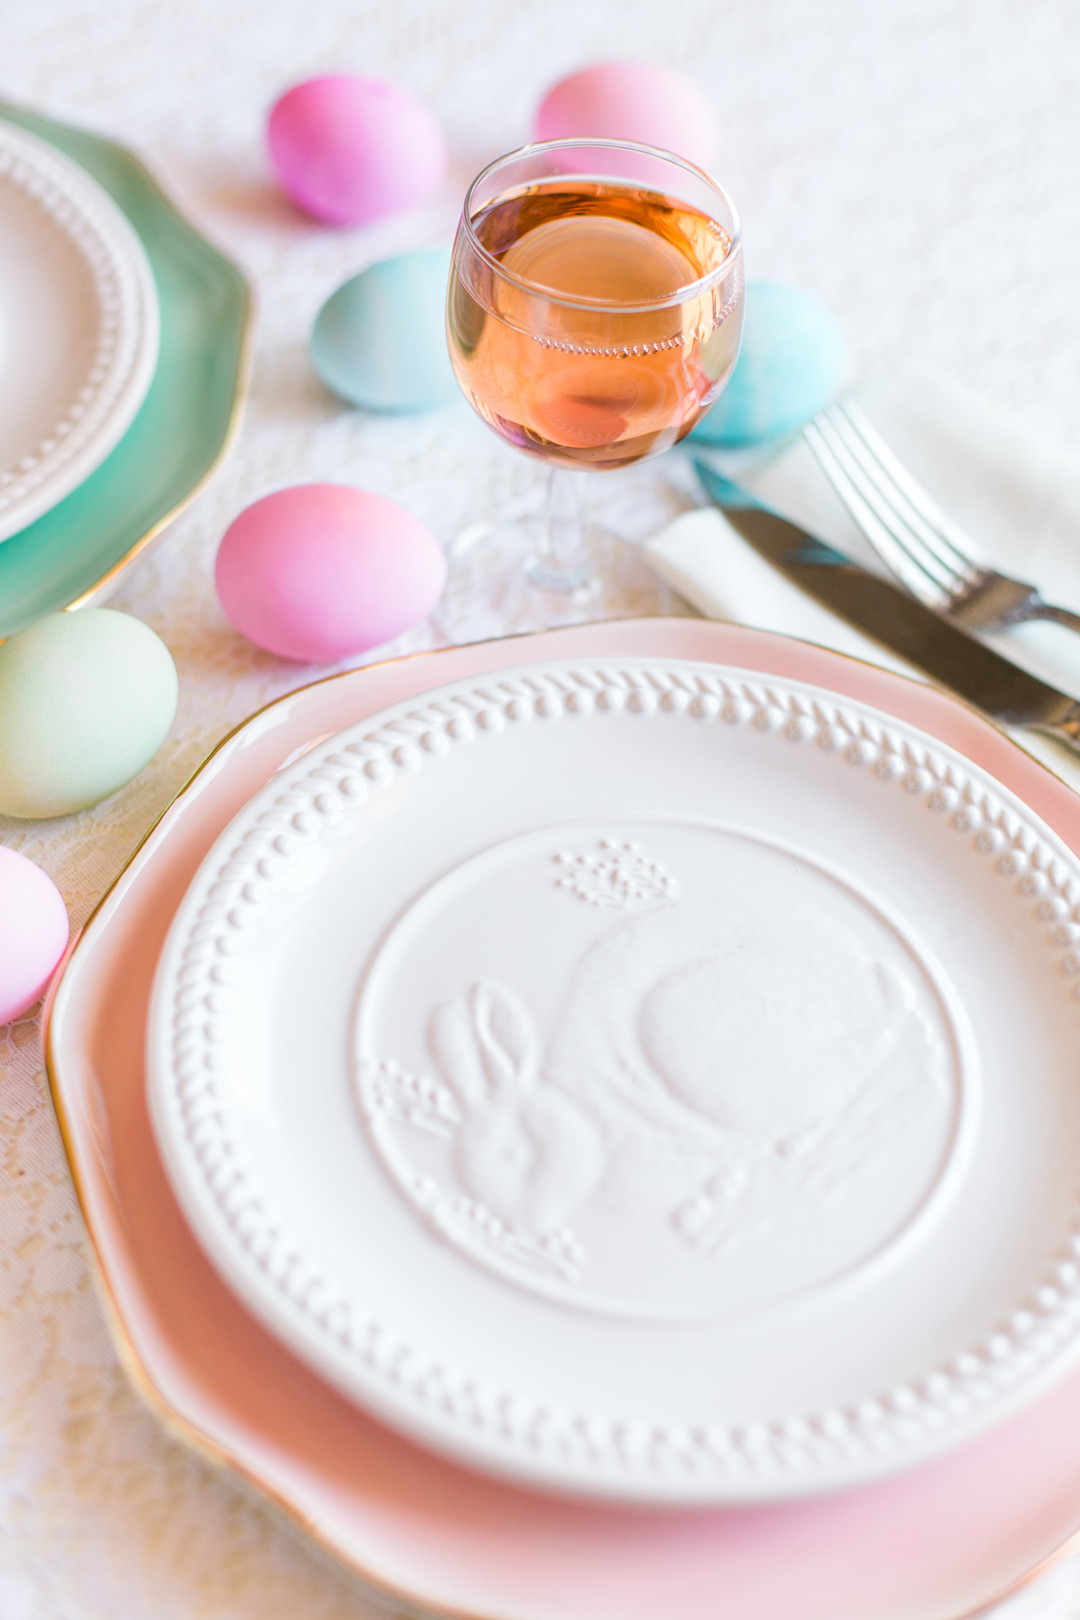 Staal_KristinaStaalPhotography_KristinaStaalPhotographyEasterTablescape201619_big Easy Entertaining: Easter Brunch Inspiration for Two